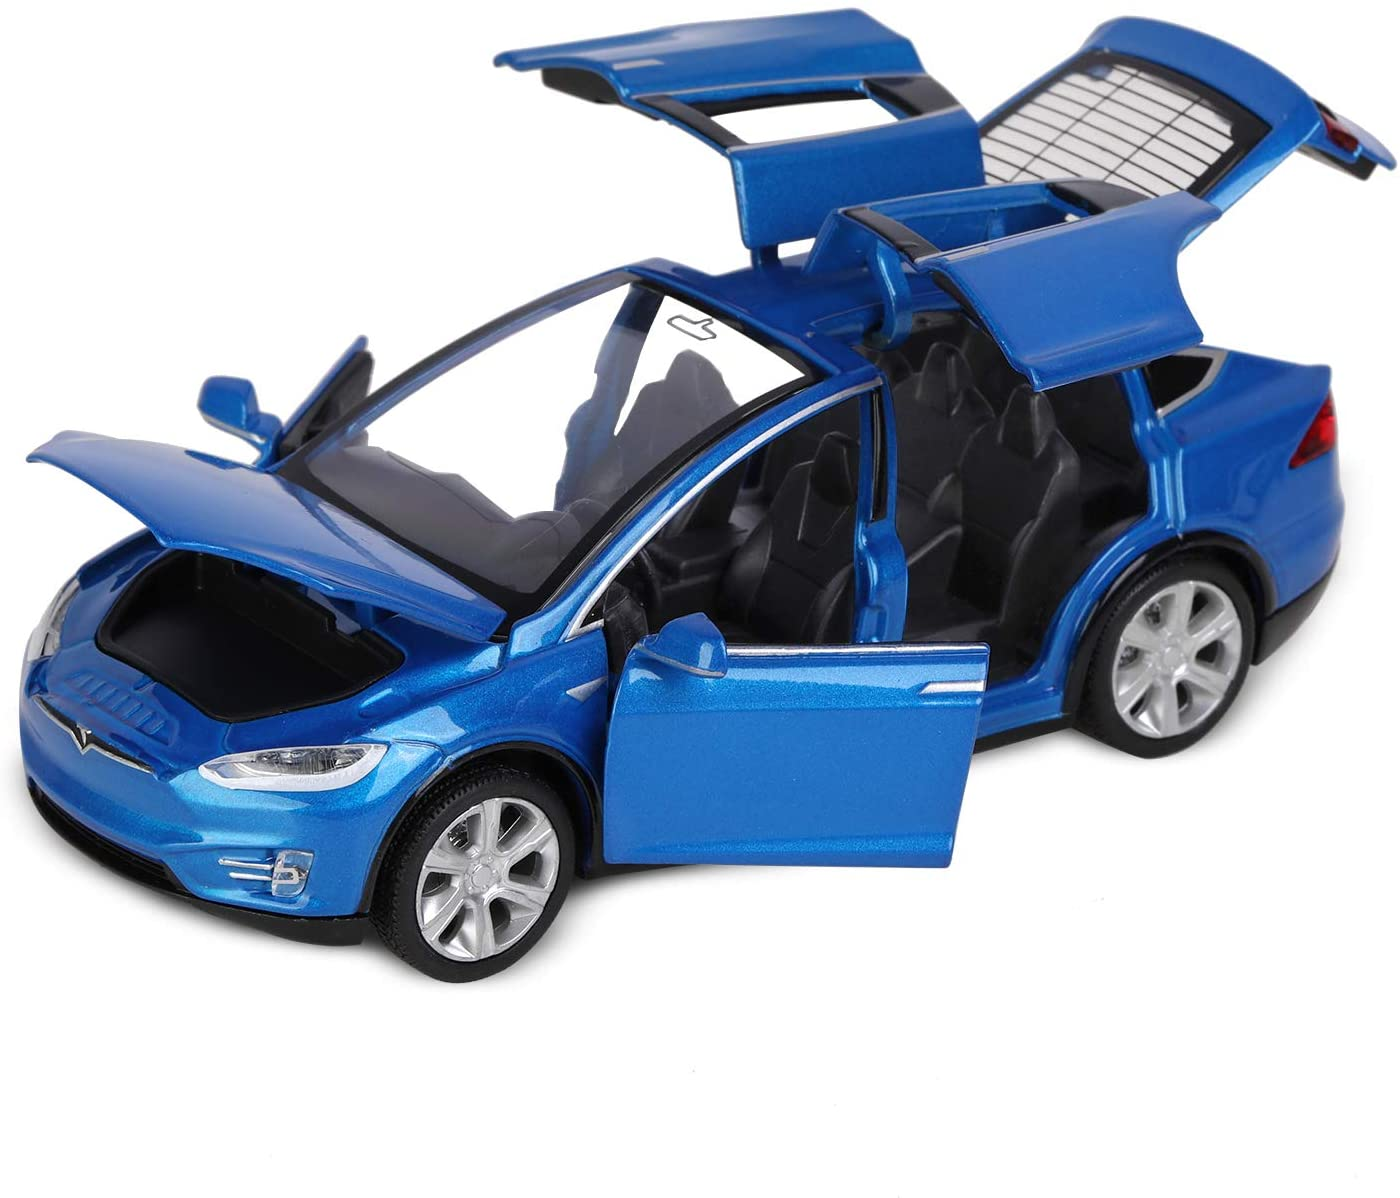 1:32 Scale Model, Tesila Model X90 Diecast Car Toys for Kids, Pull Back Alloy Collectible Vehicle Toy Door Opening with Lights and Music, Birthday Gift for Boys Toddlers (6